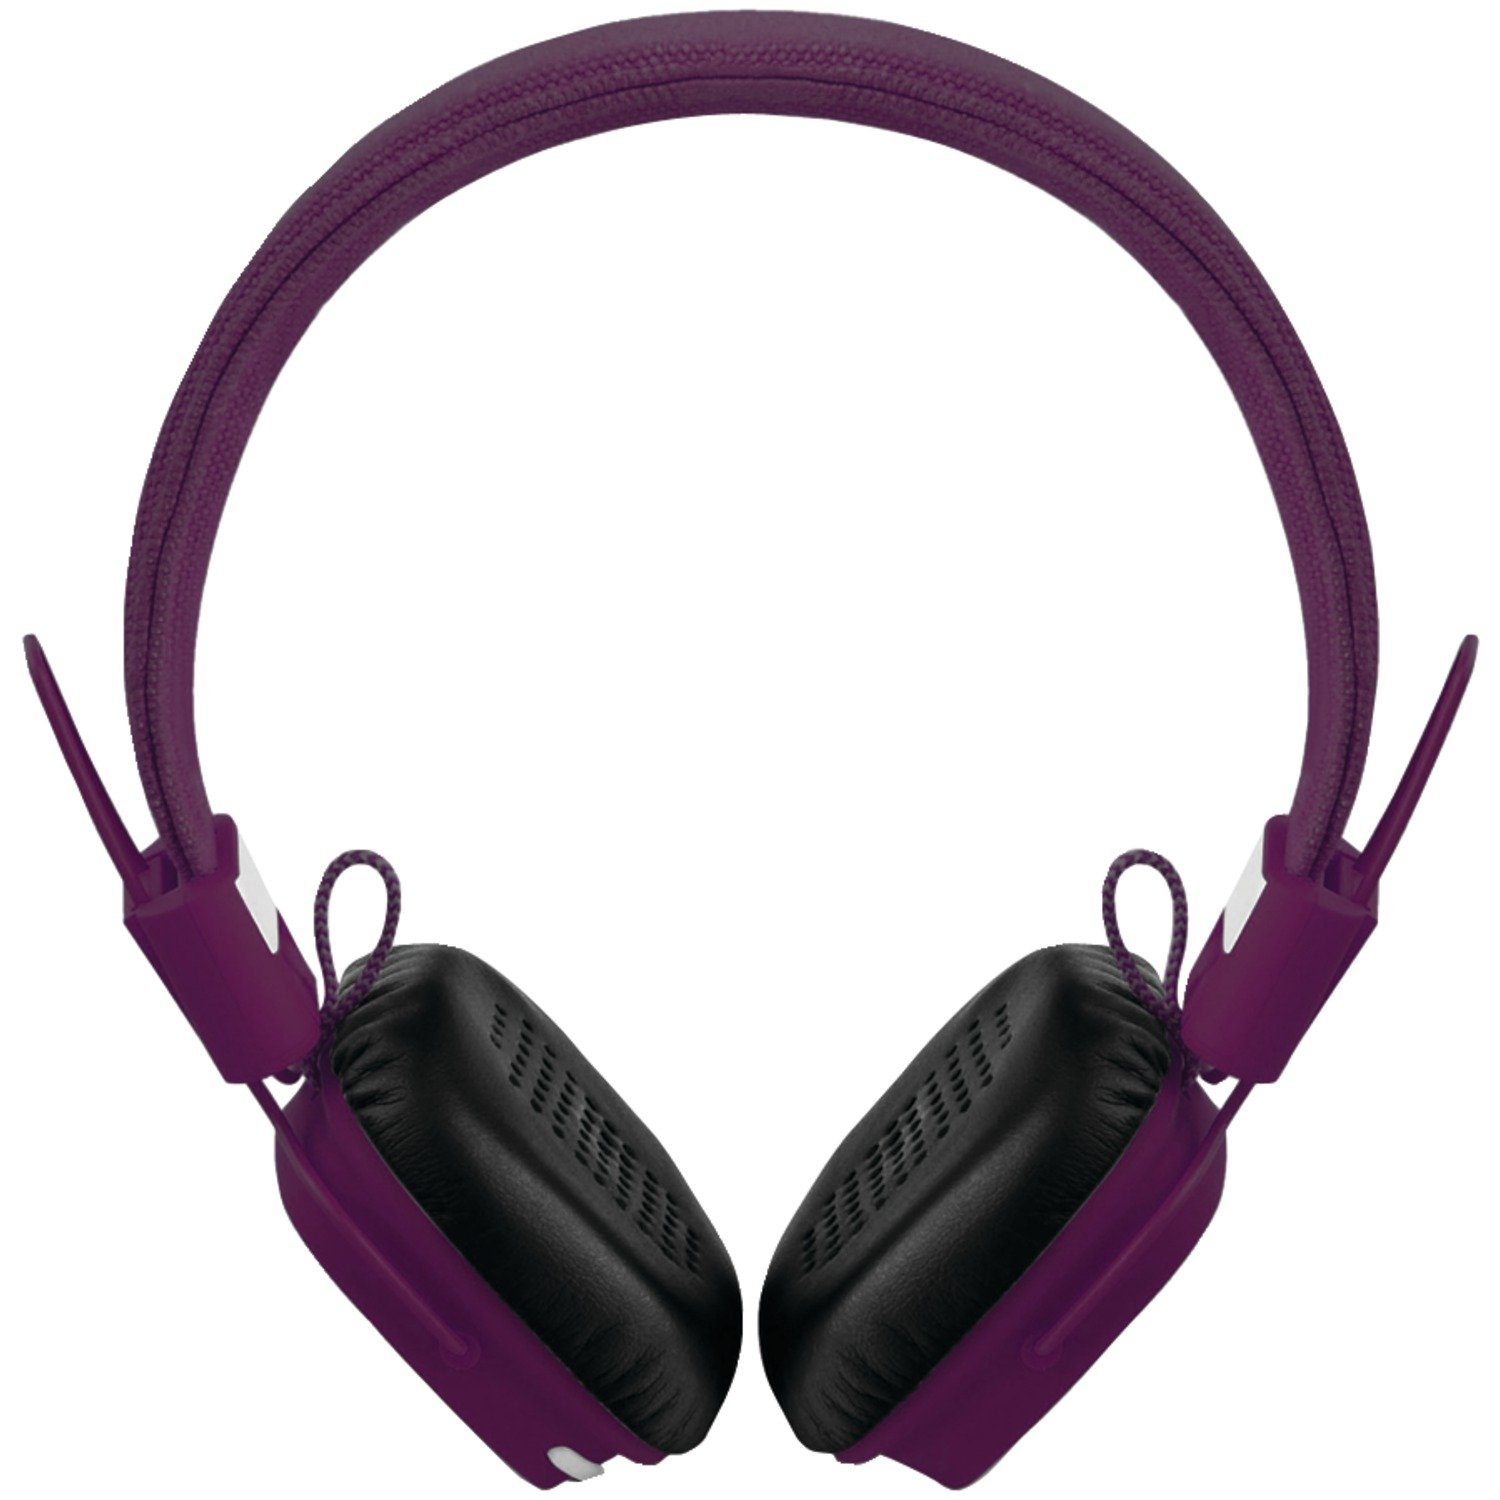 fcdf07fd37f Amazon.com: Outdoor Tech OT1400 Privates - Wireless Bluetooth Headphones  with Touch Control (Purplish): Home Audio & Theater